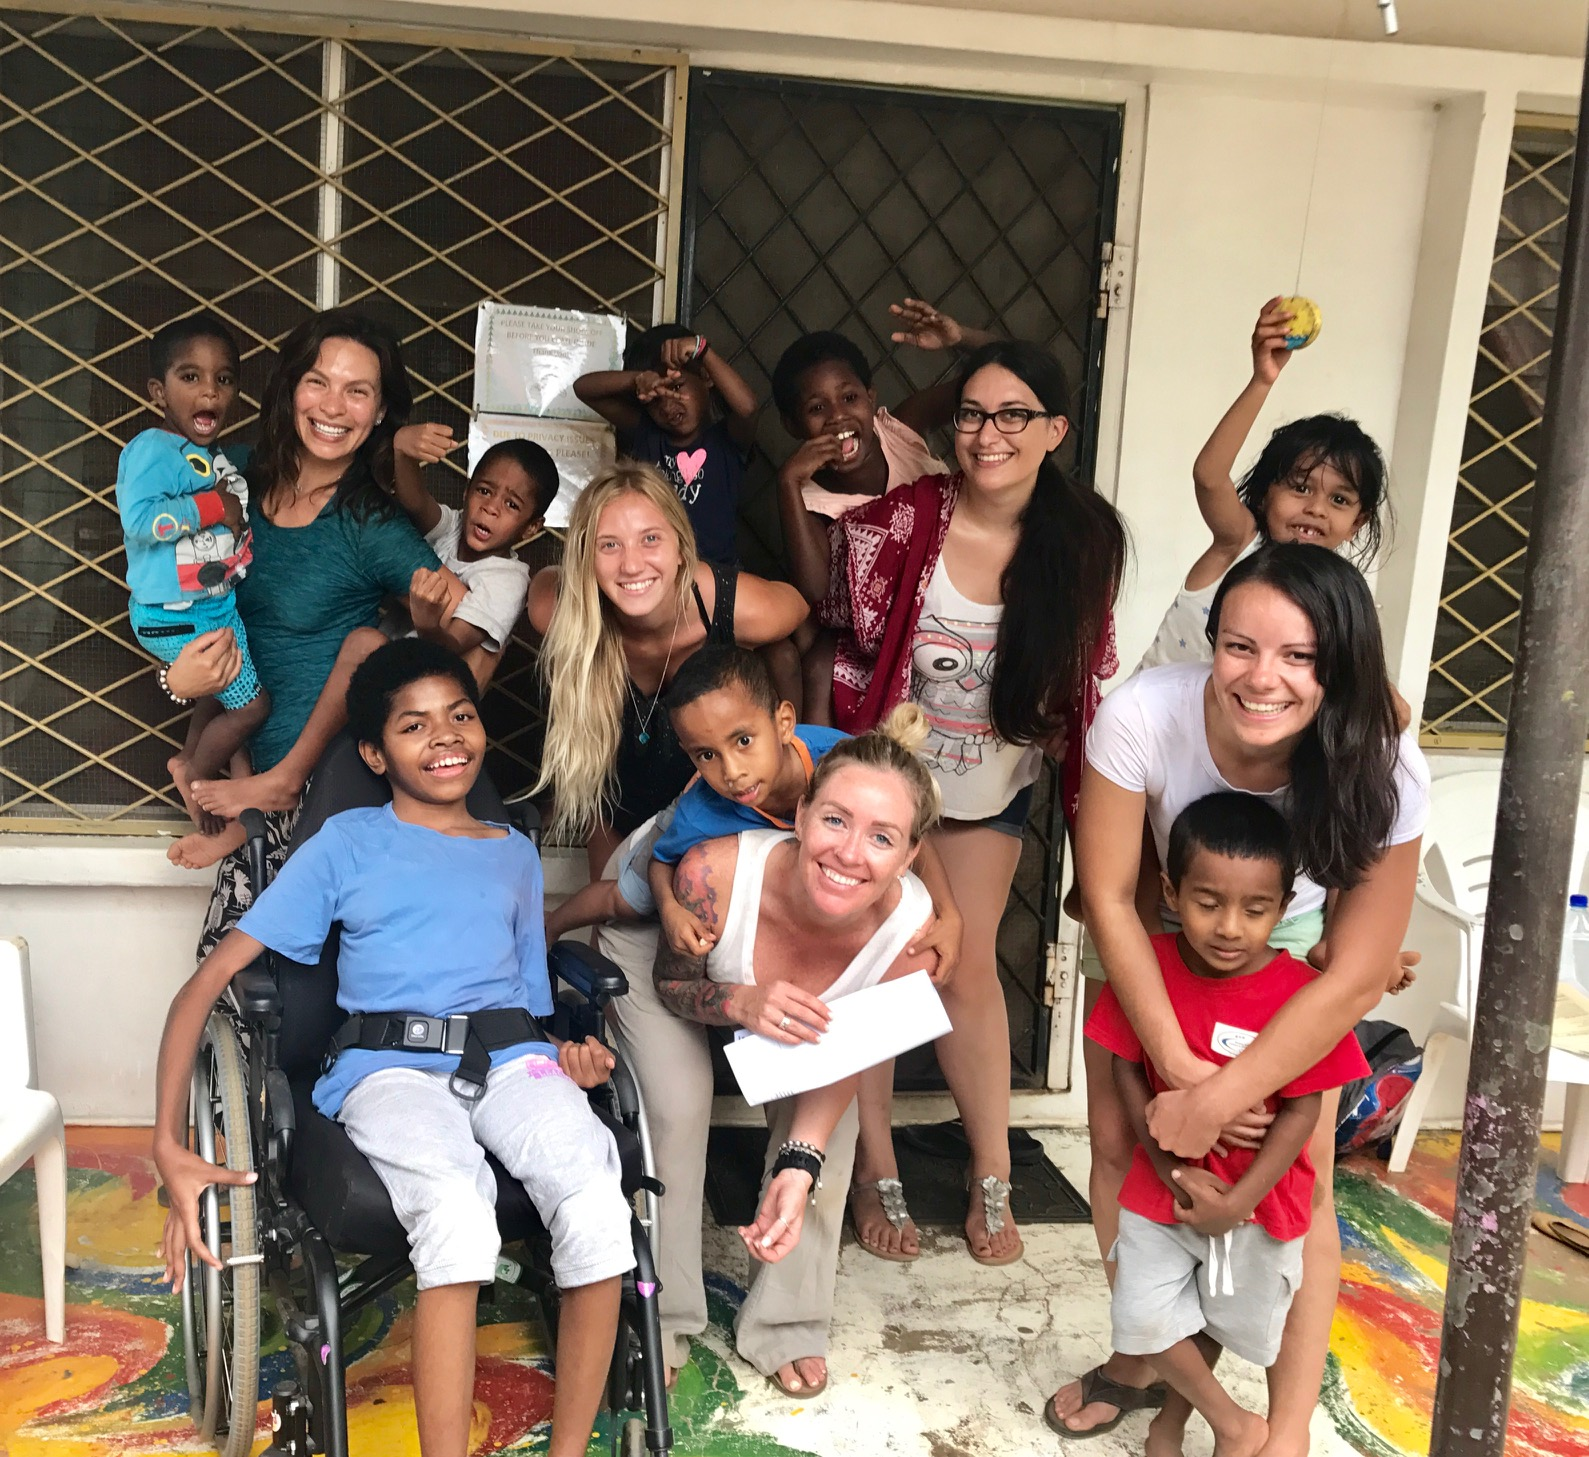 This photo was taken at Treasure Home. All of these children are considered orphans and are living here full time. They were so sweet and loved playing with us.